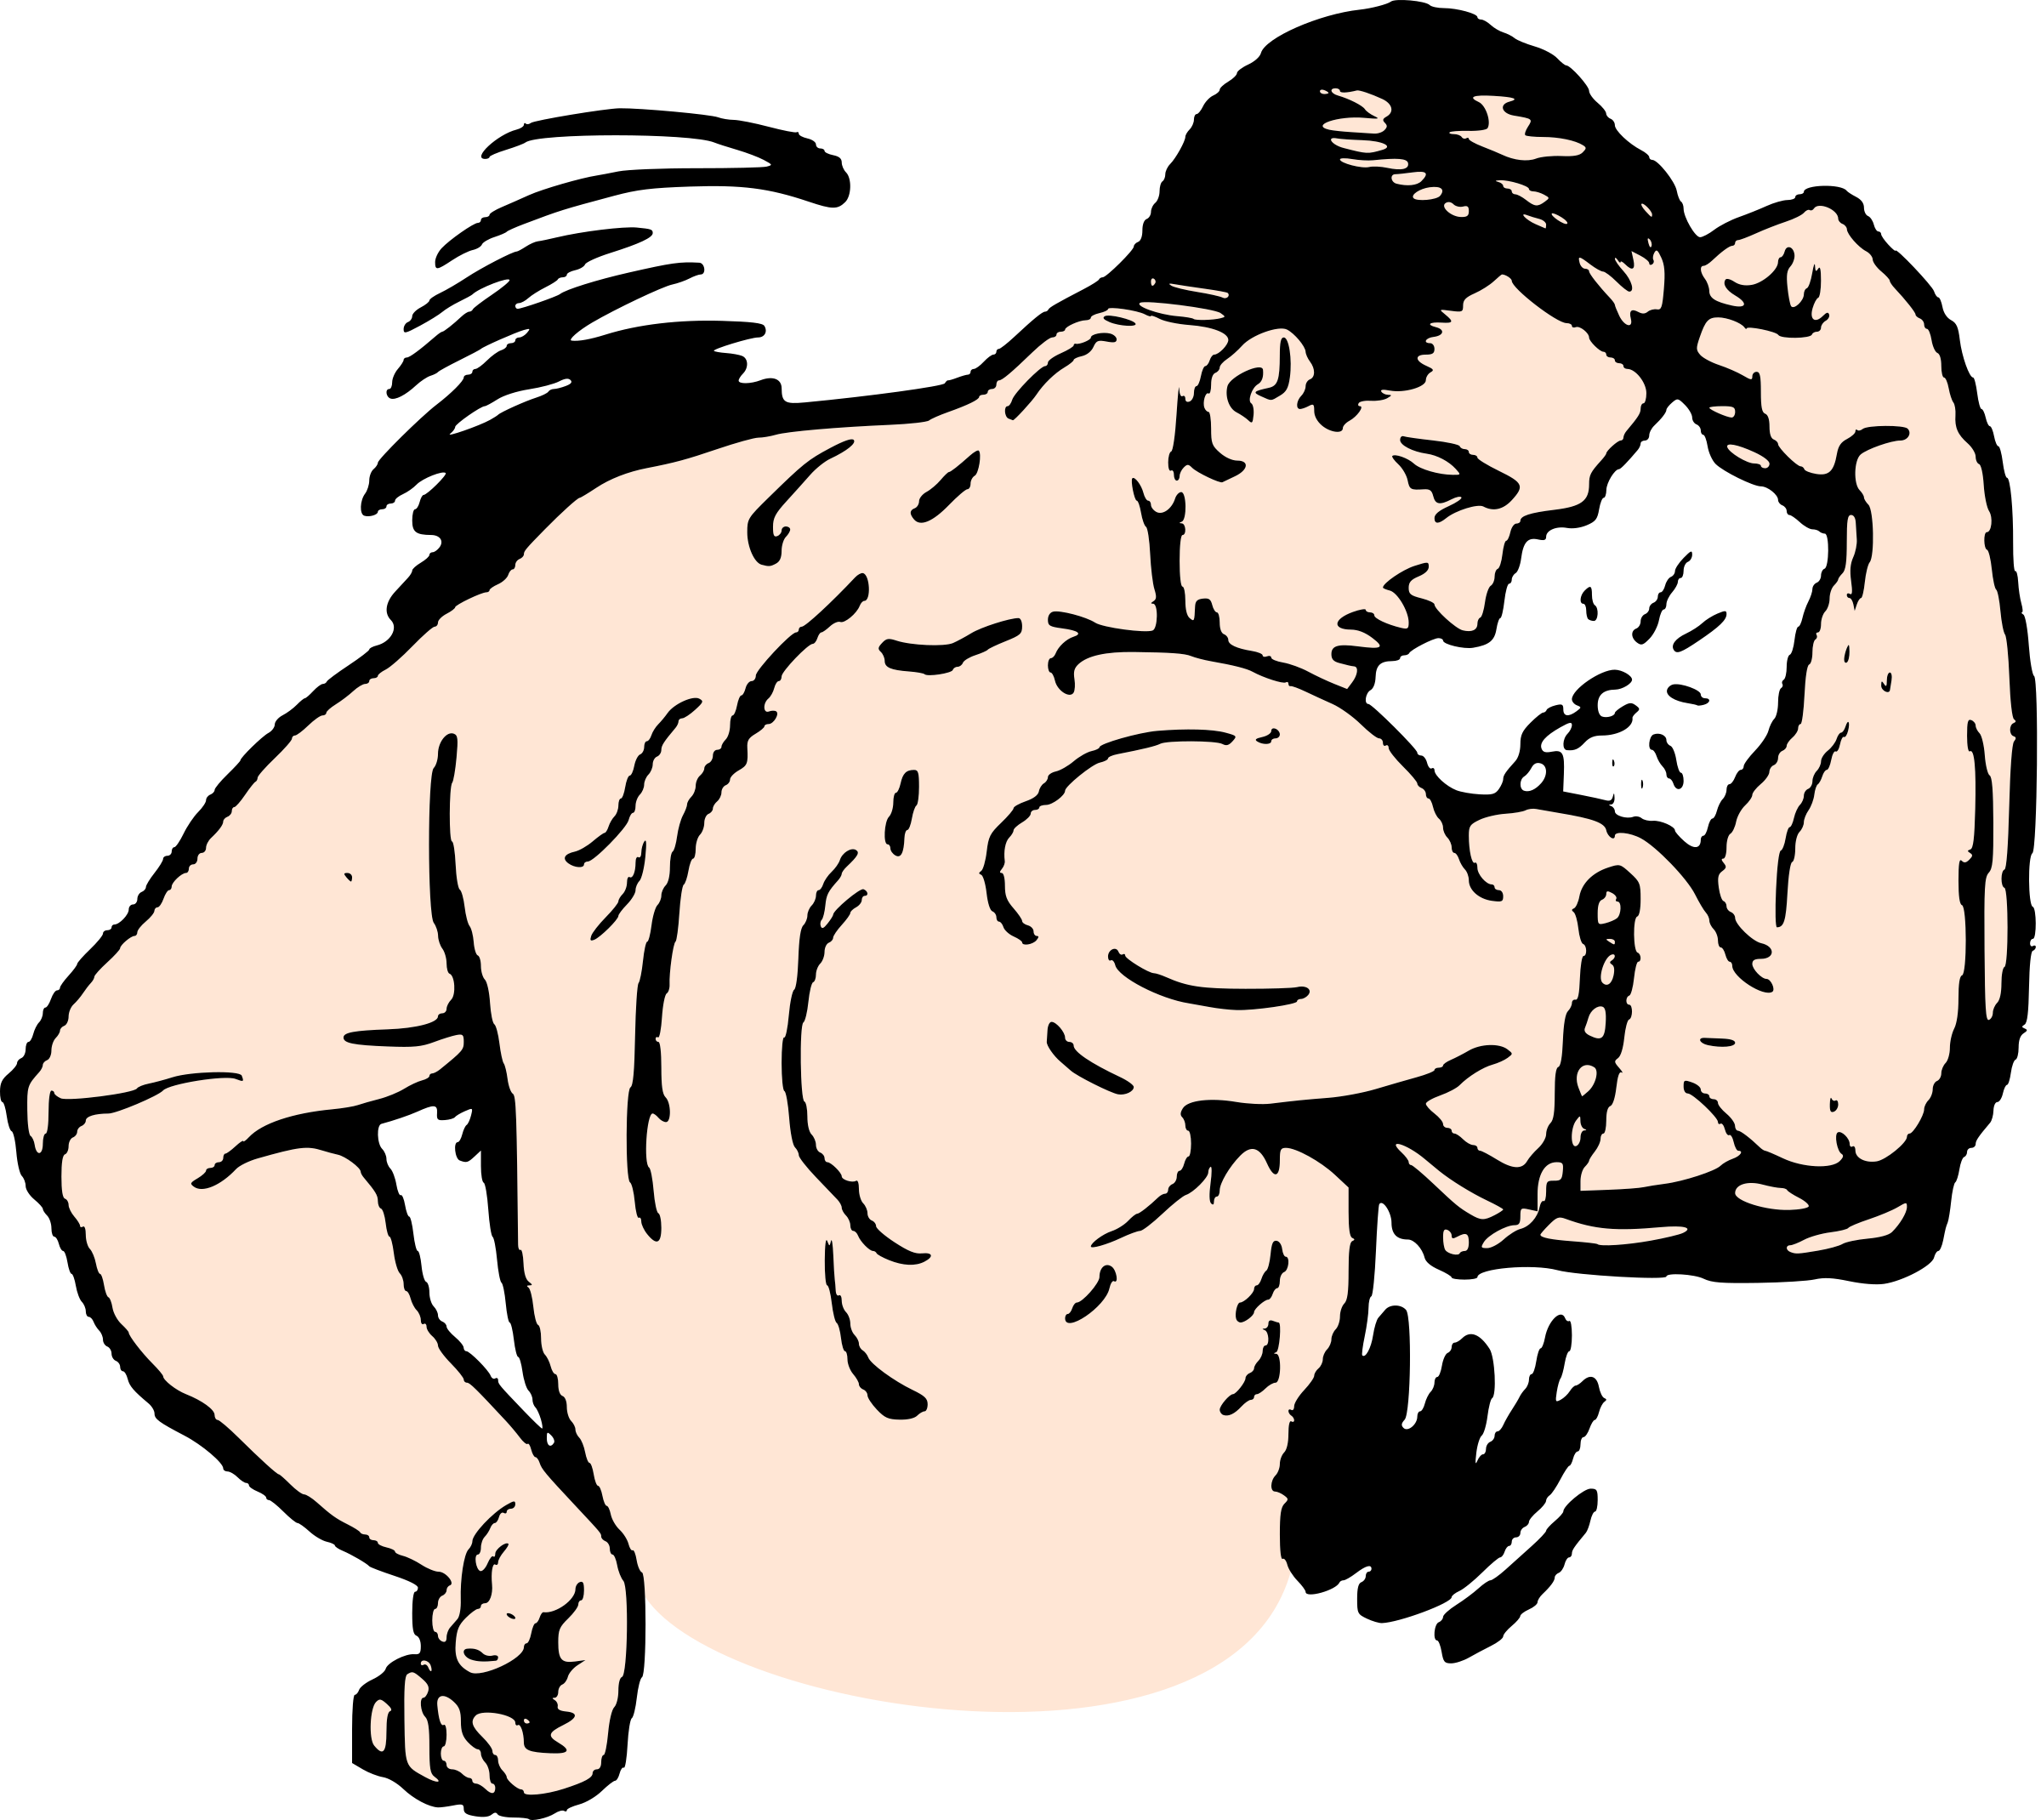 Muscle clipart stong. Muscles icons png free